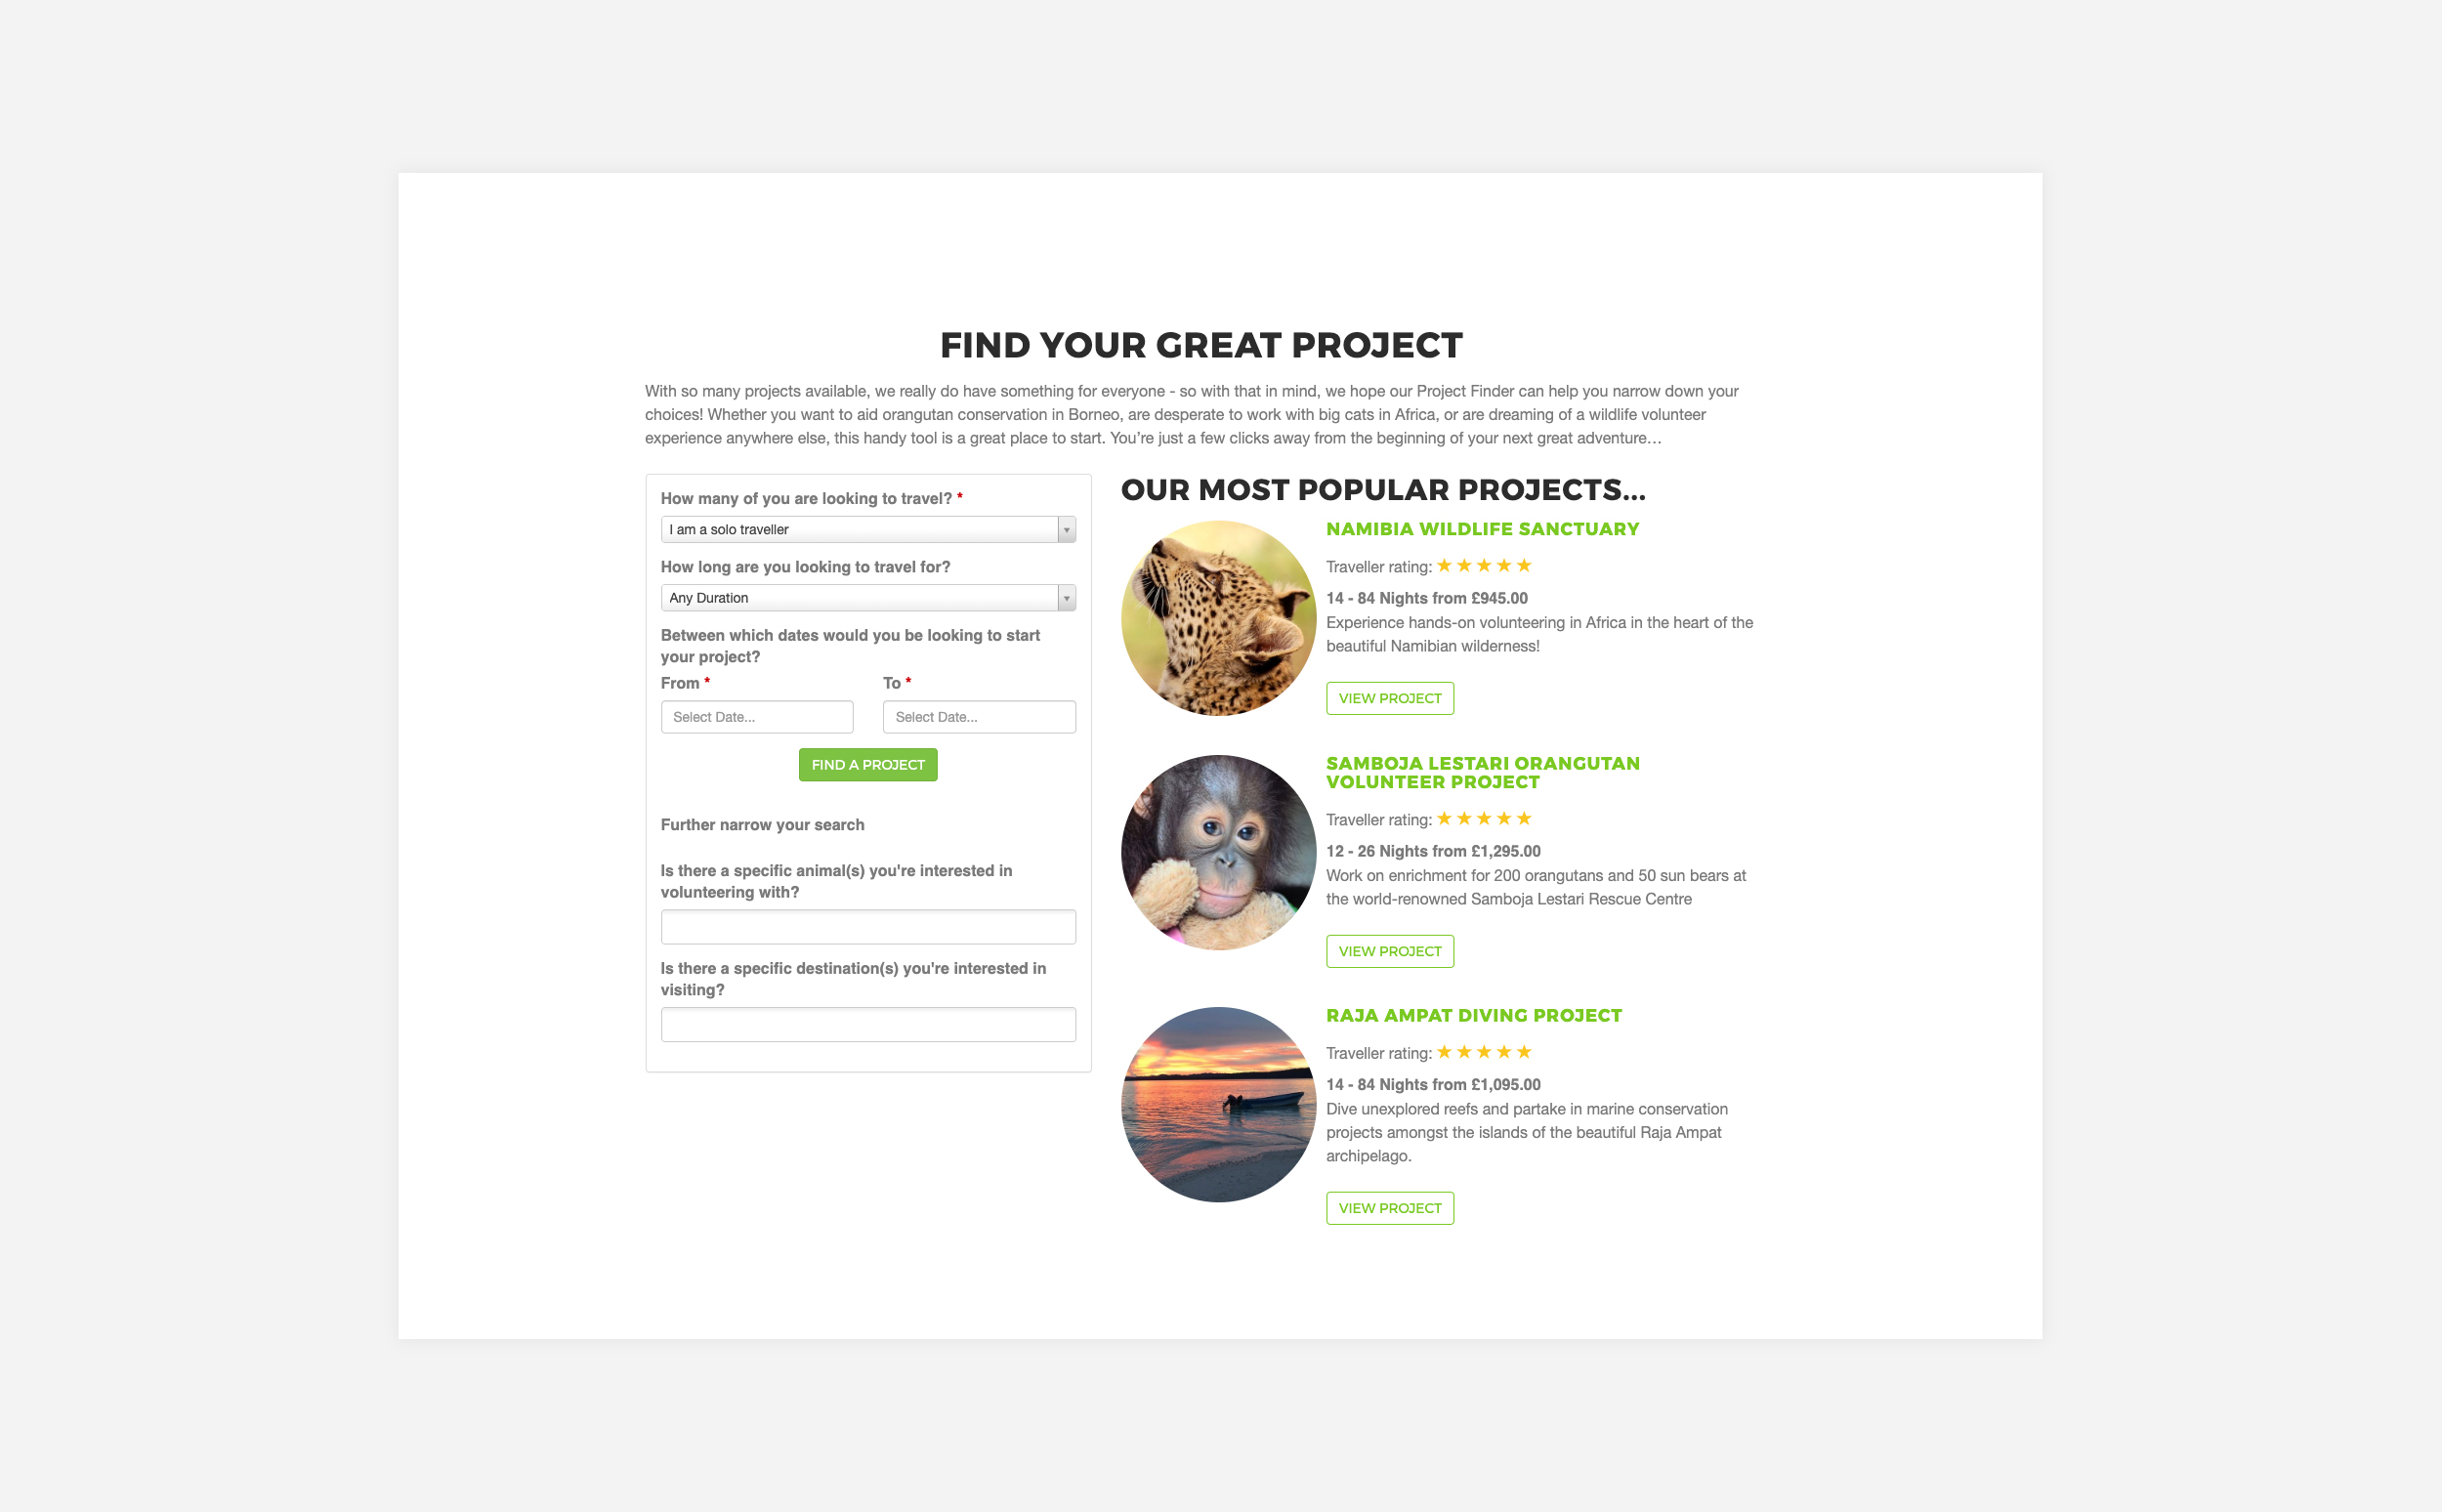 The_Great_Projects_Find_a_Project